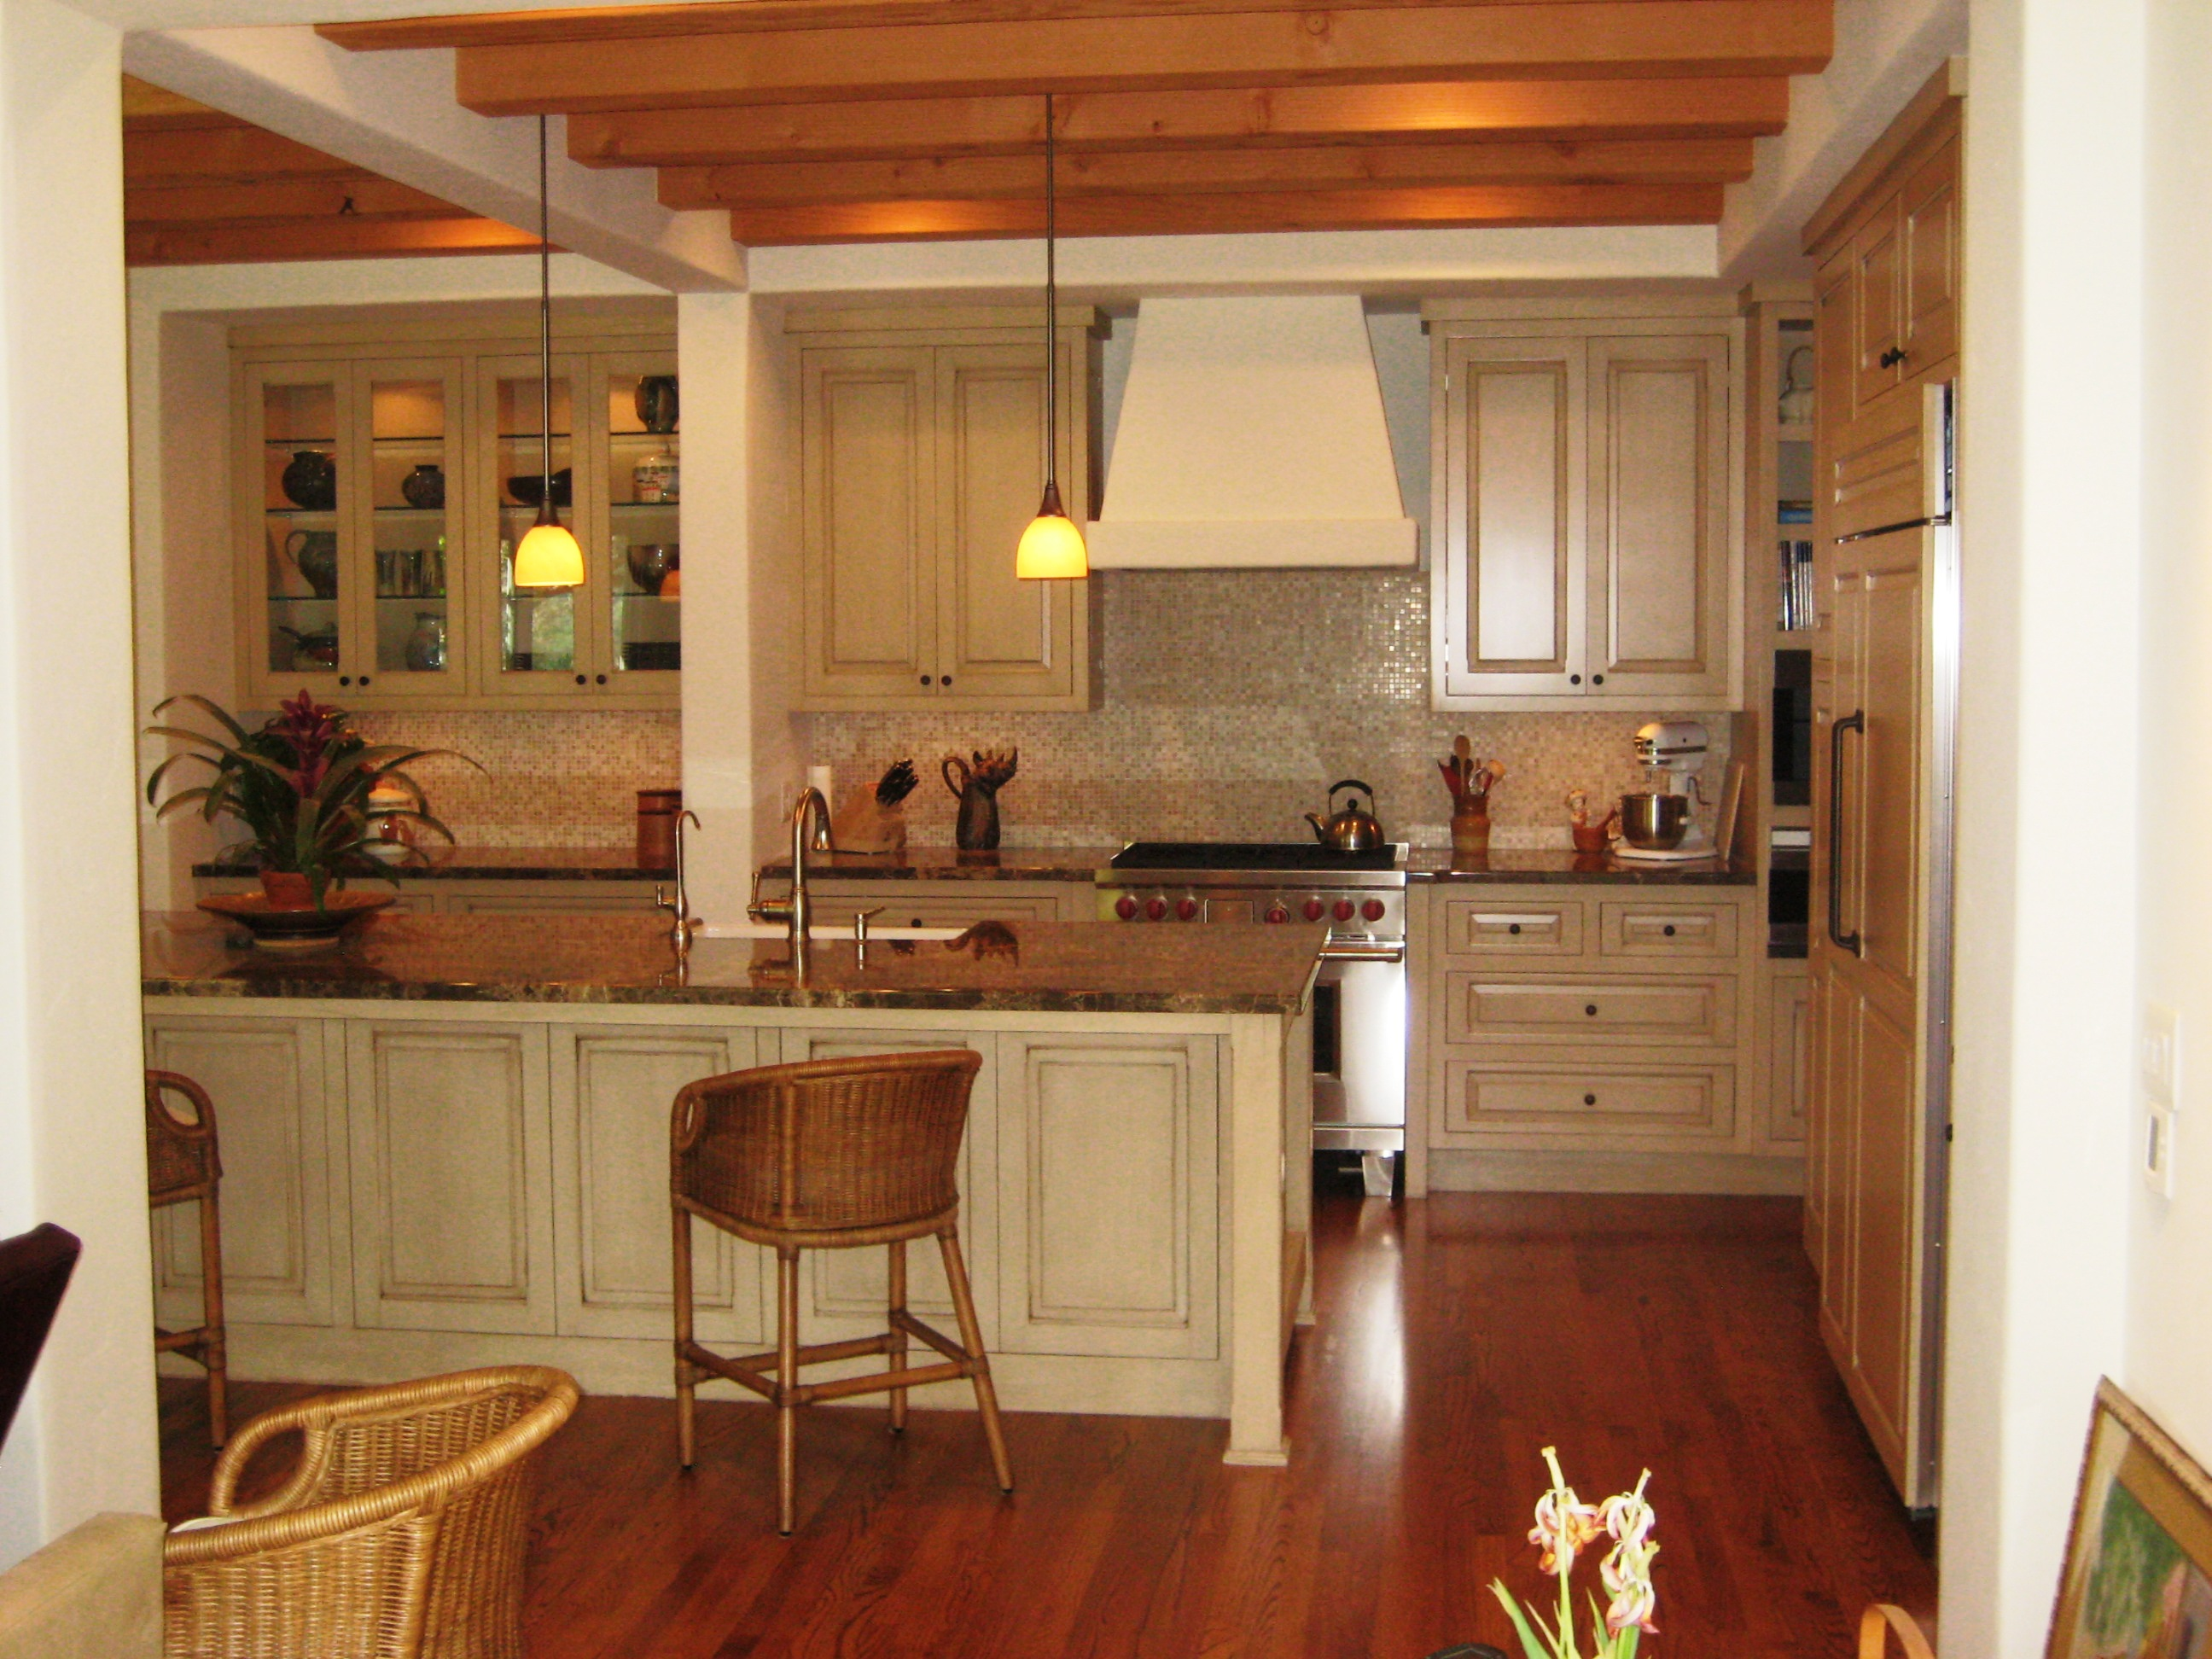 Antique kitchen 021 custom cabinets by mahnken cabinets - Vintage kitchen ...